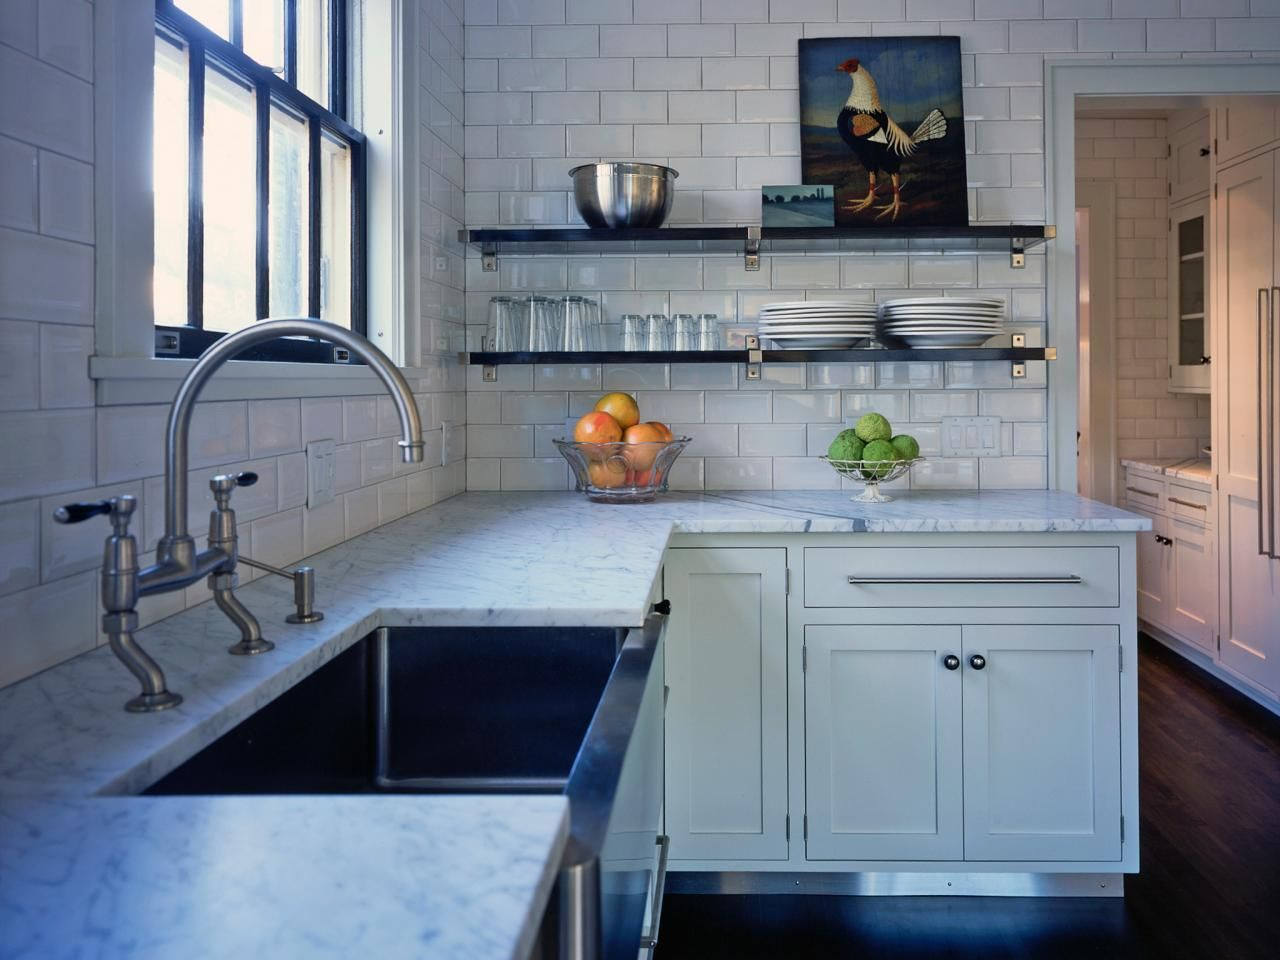 15 Design Ideas For Kitchens Without Upper Cabinets Kitchens Without Upper Cabinets Kitchen Cabinet Design Kitchen Cabinet Styles